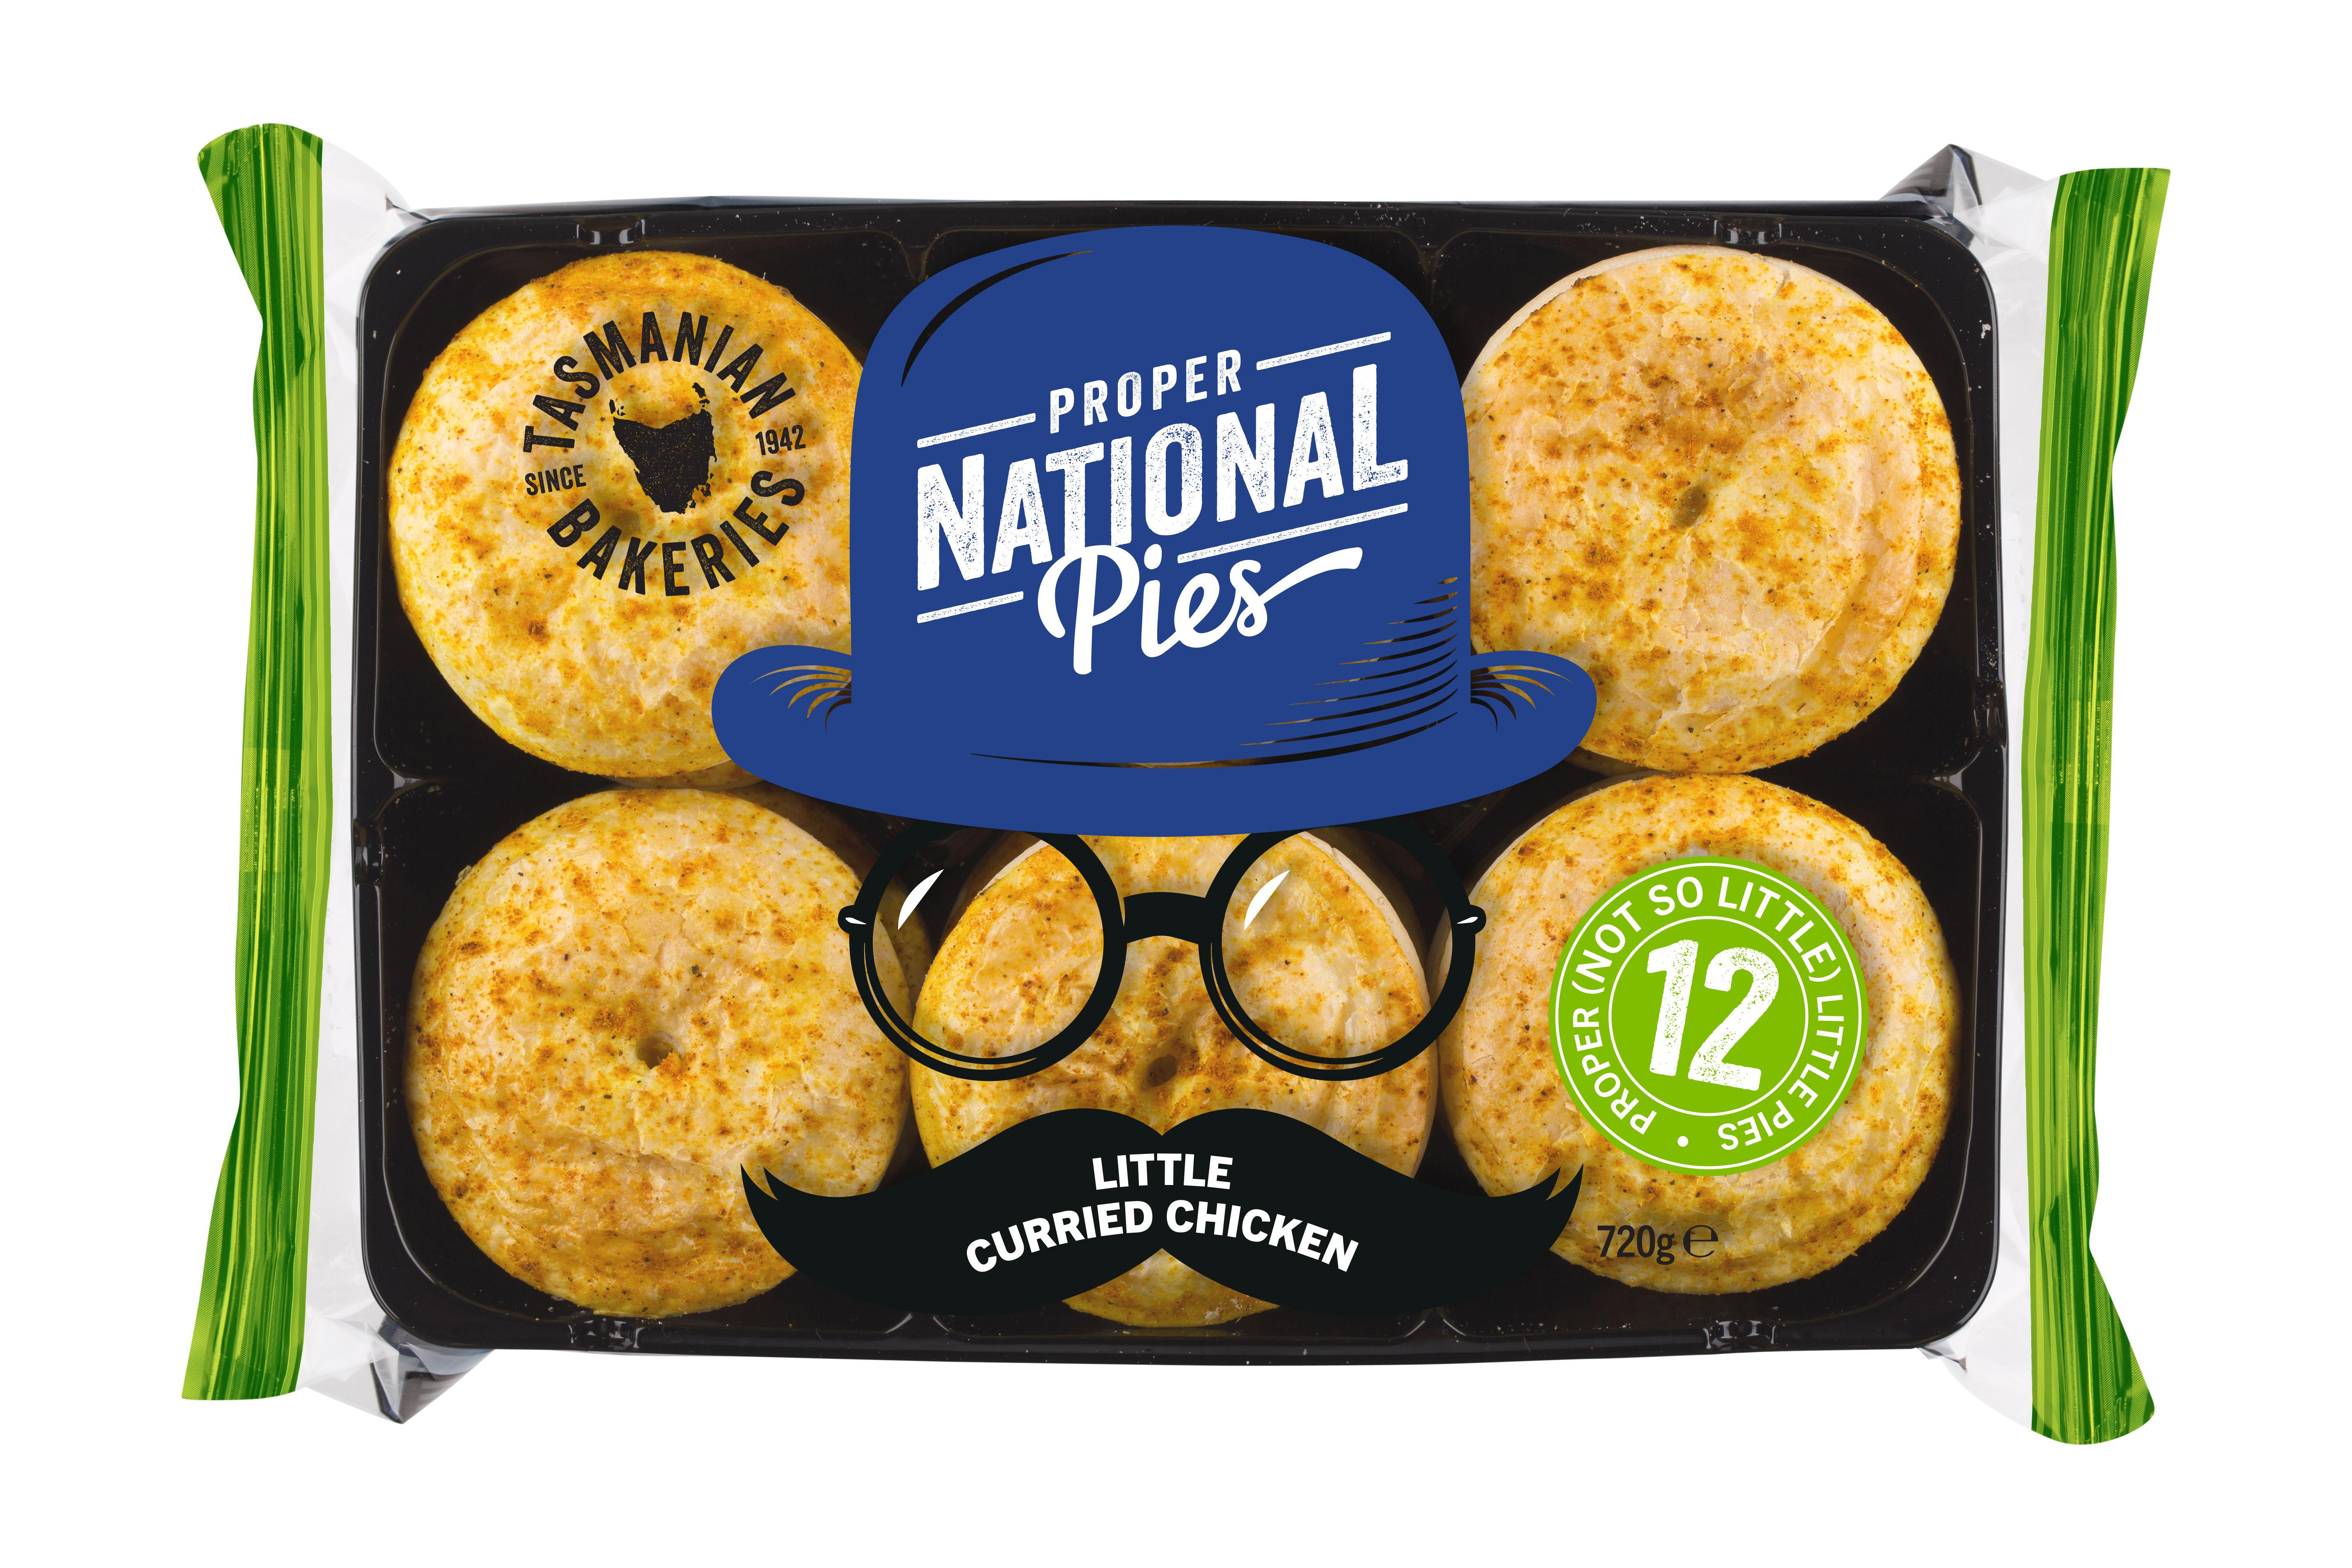 Little Curried Chicken Pies 60g - Click for more info